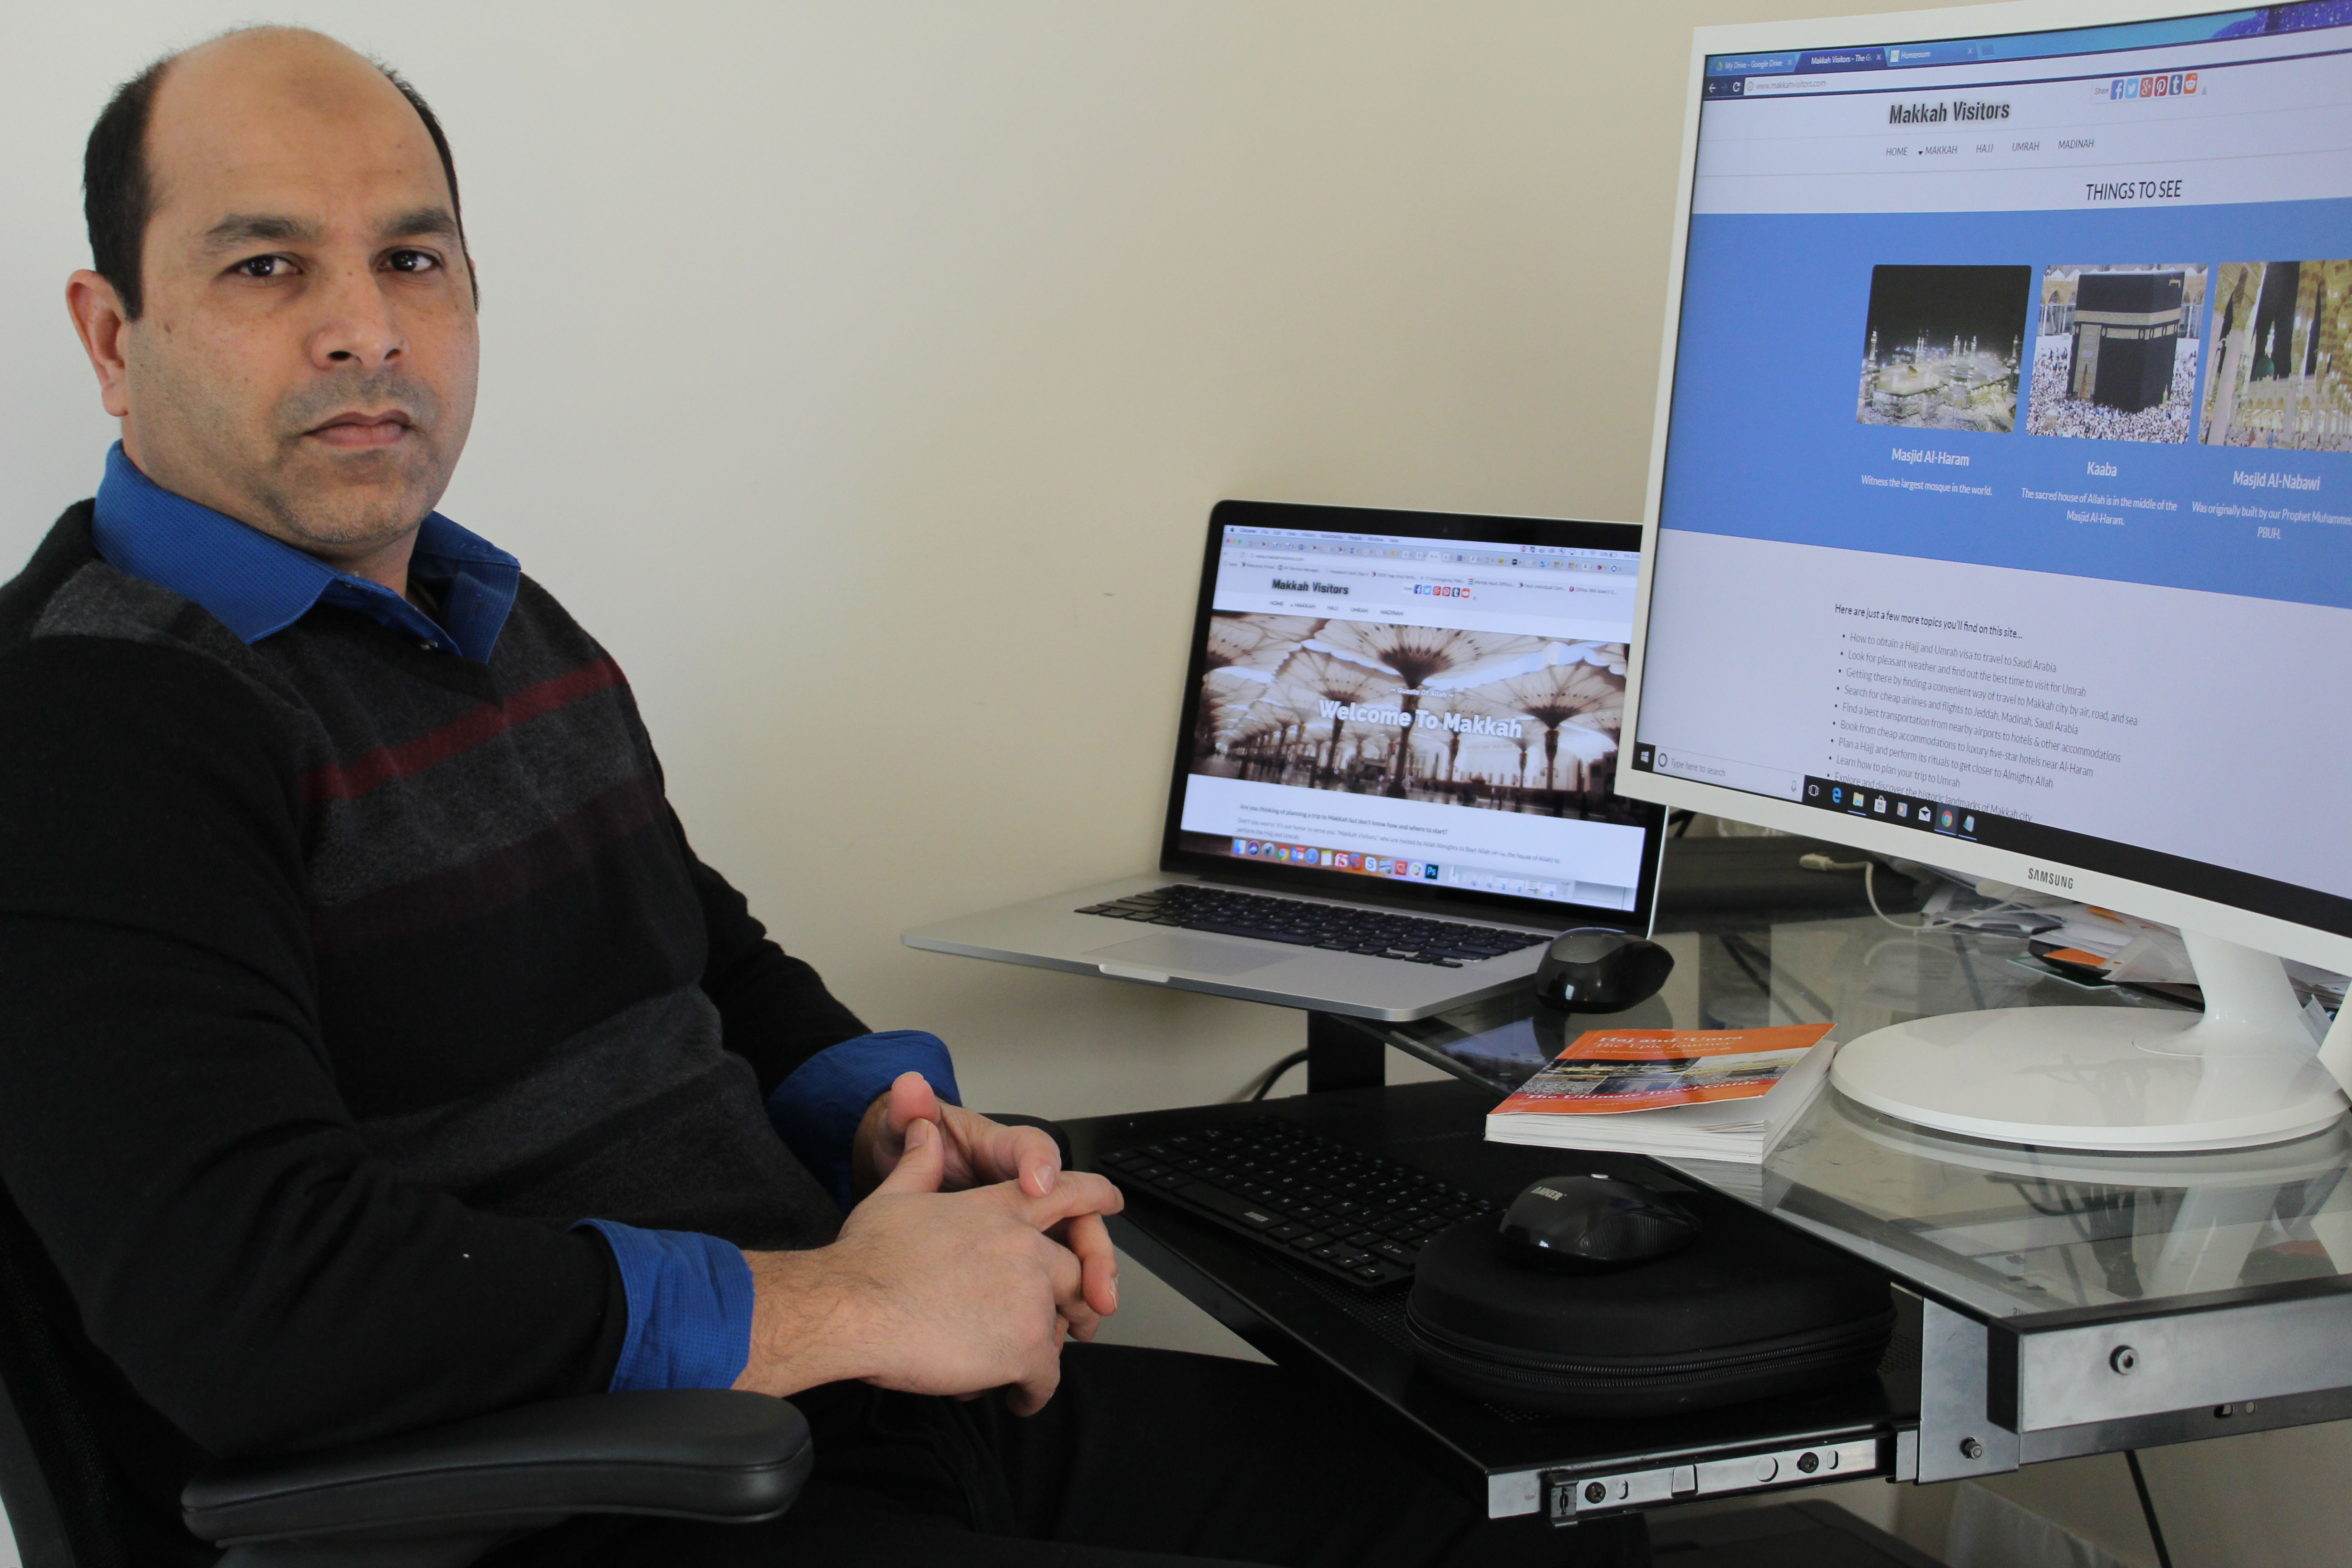 Here, I am sitting in front of computer and working on building MakkahVisitors.com website.